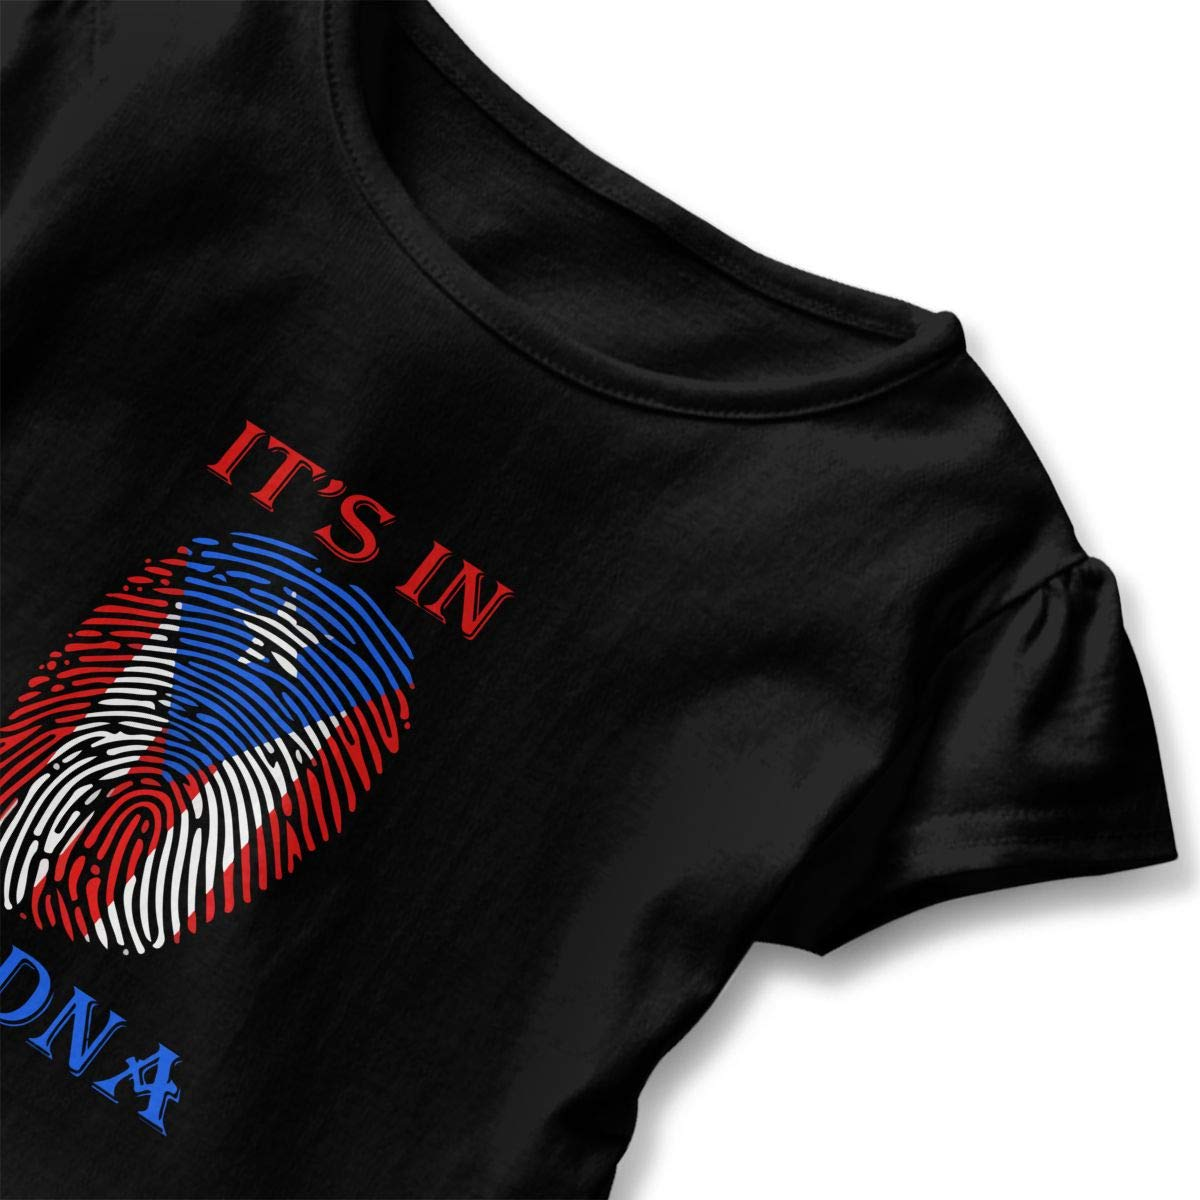 Puerto Rico Its in DNA Shirt Puerto Rico DNA Toddler Girls T Shirt Kids Cotton Short Sleeve Ruffle Tee